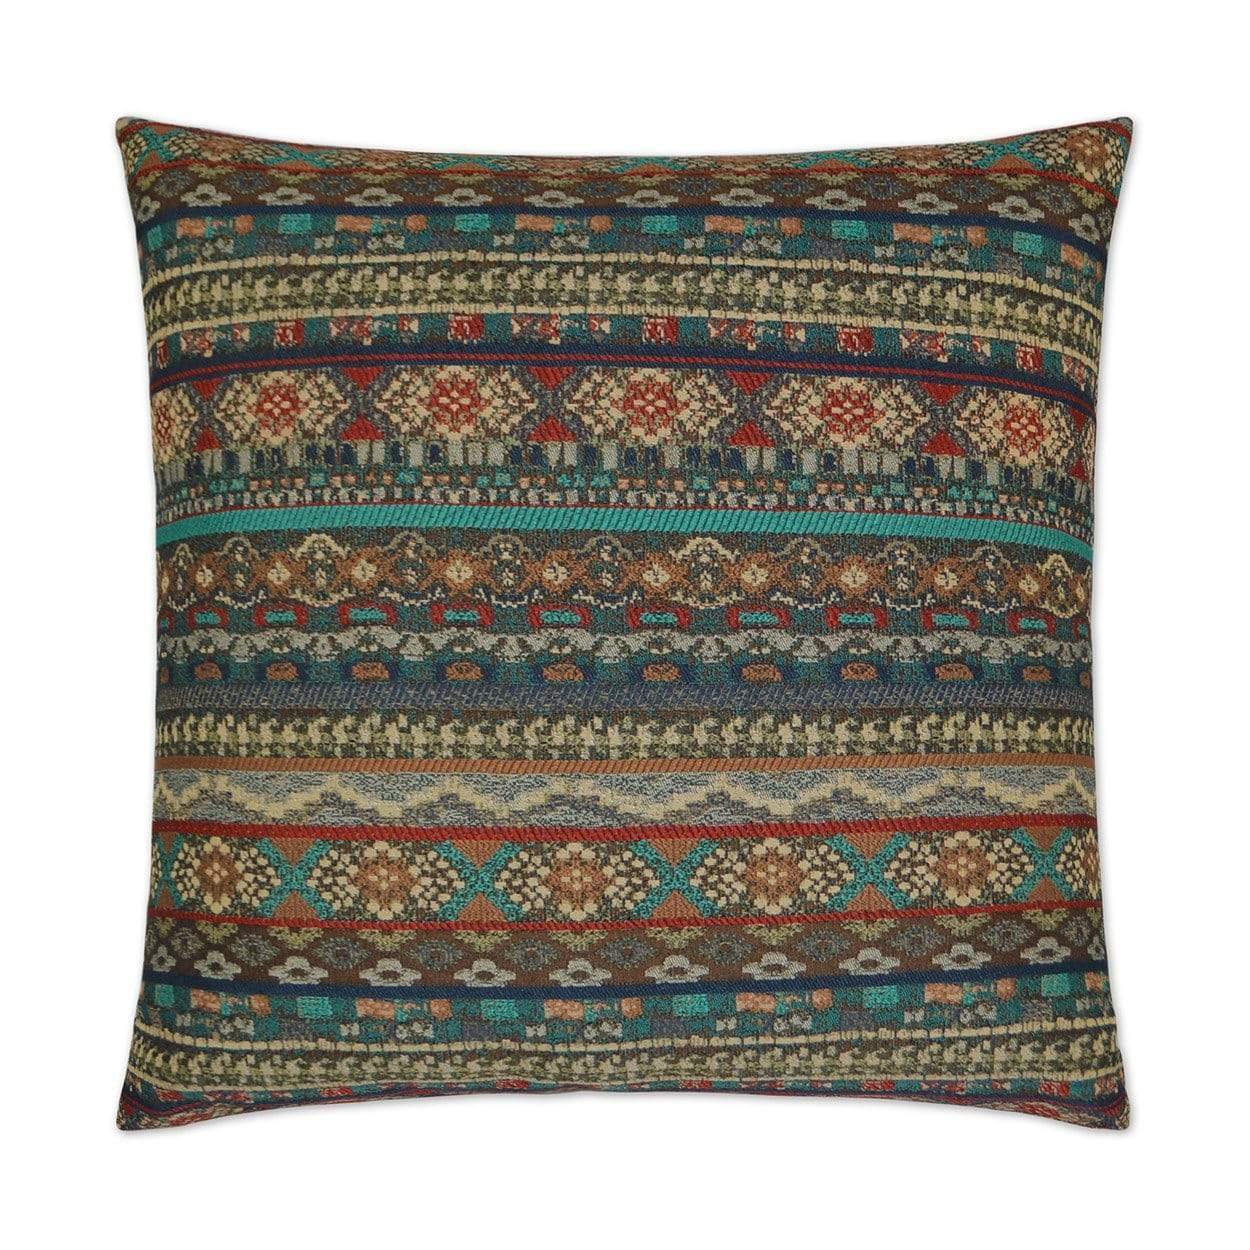 D.V. Kap D.V. Kap Gemology Pillow - Available in 2 Colors Turquoise 2799-T